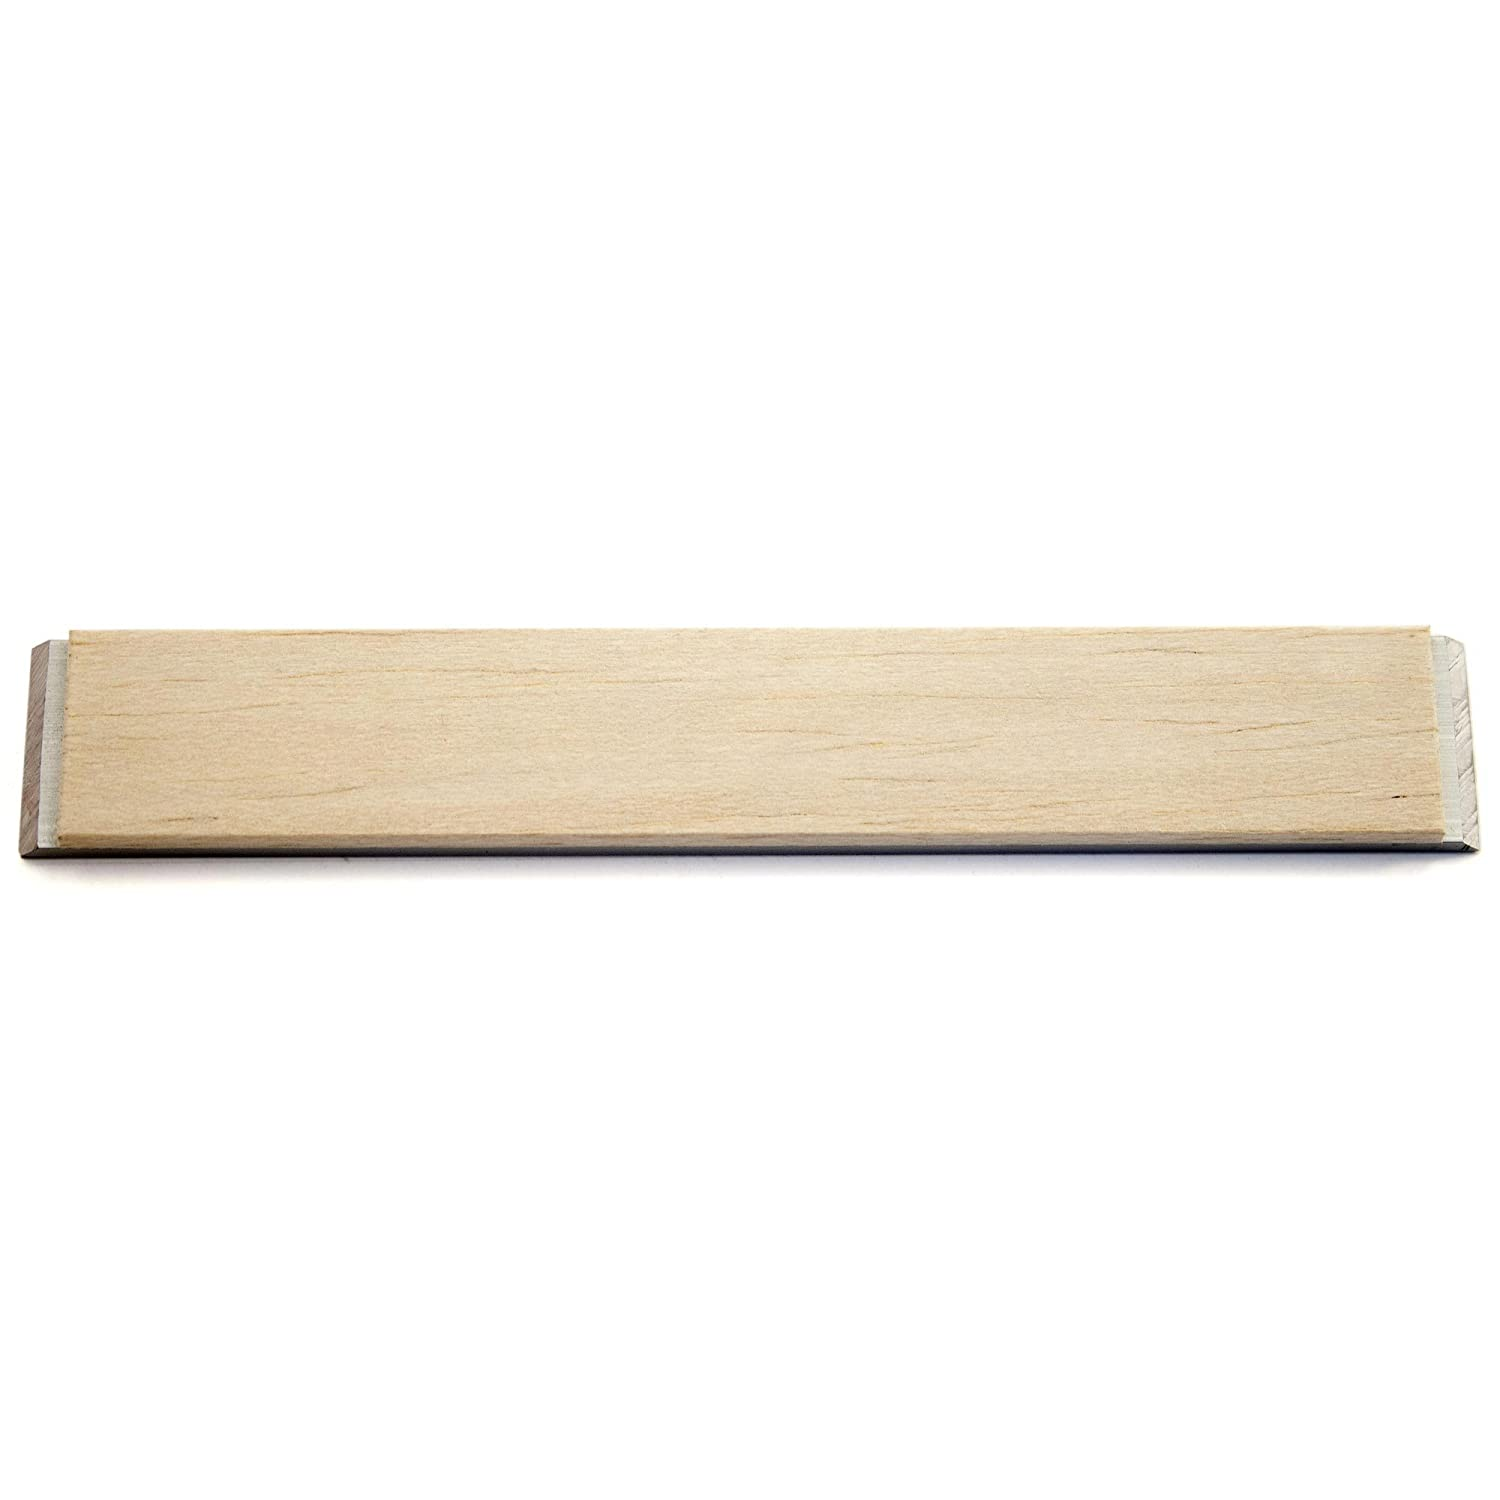 Balsa Strop 6 x 1 with Aluminum Mounting for Edge Pro Gritomatic